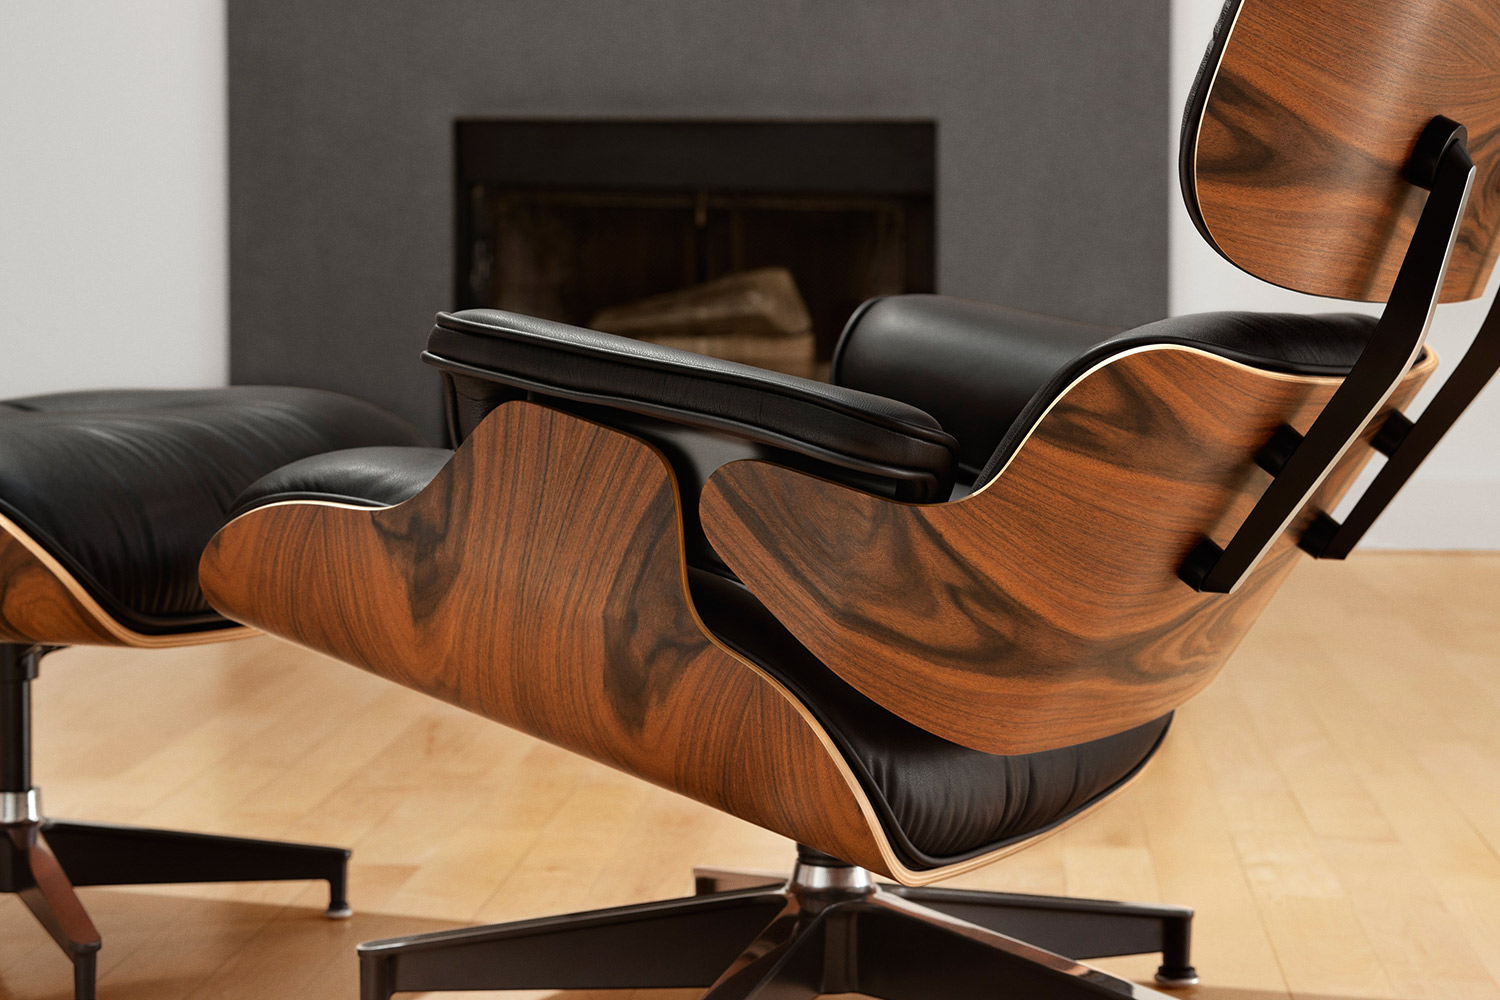 Eames Replica Stoel : How to tell if your eames lounge chair is real vs fake u my eames